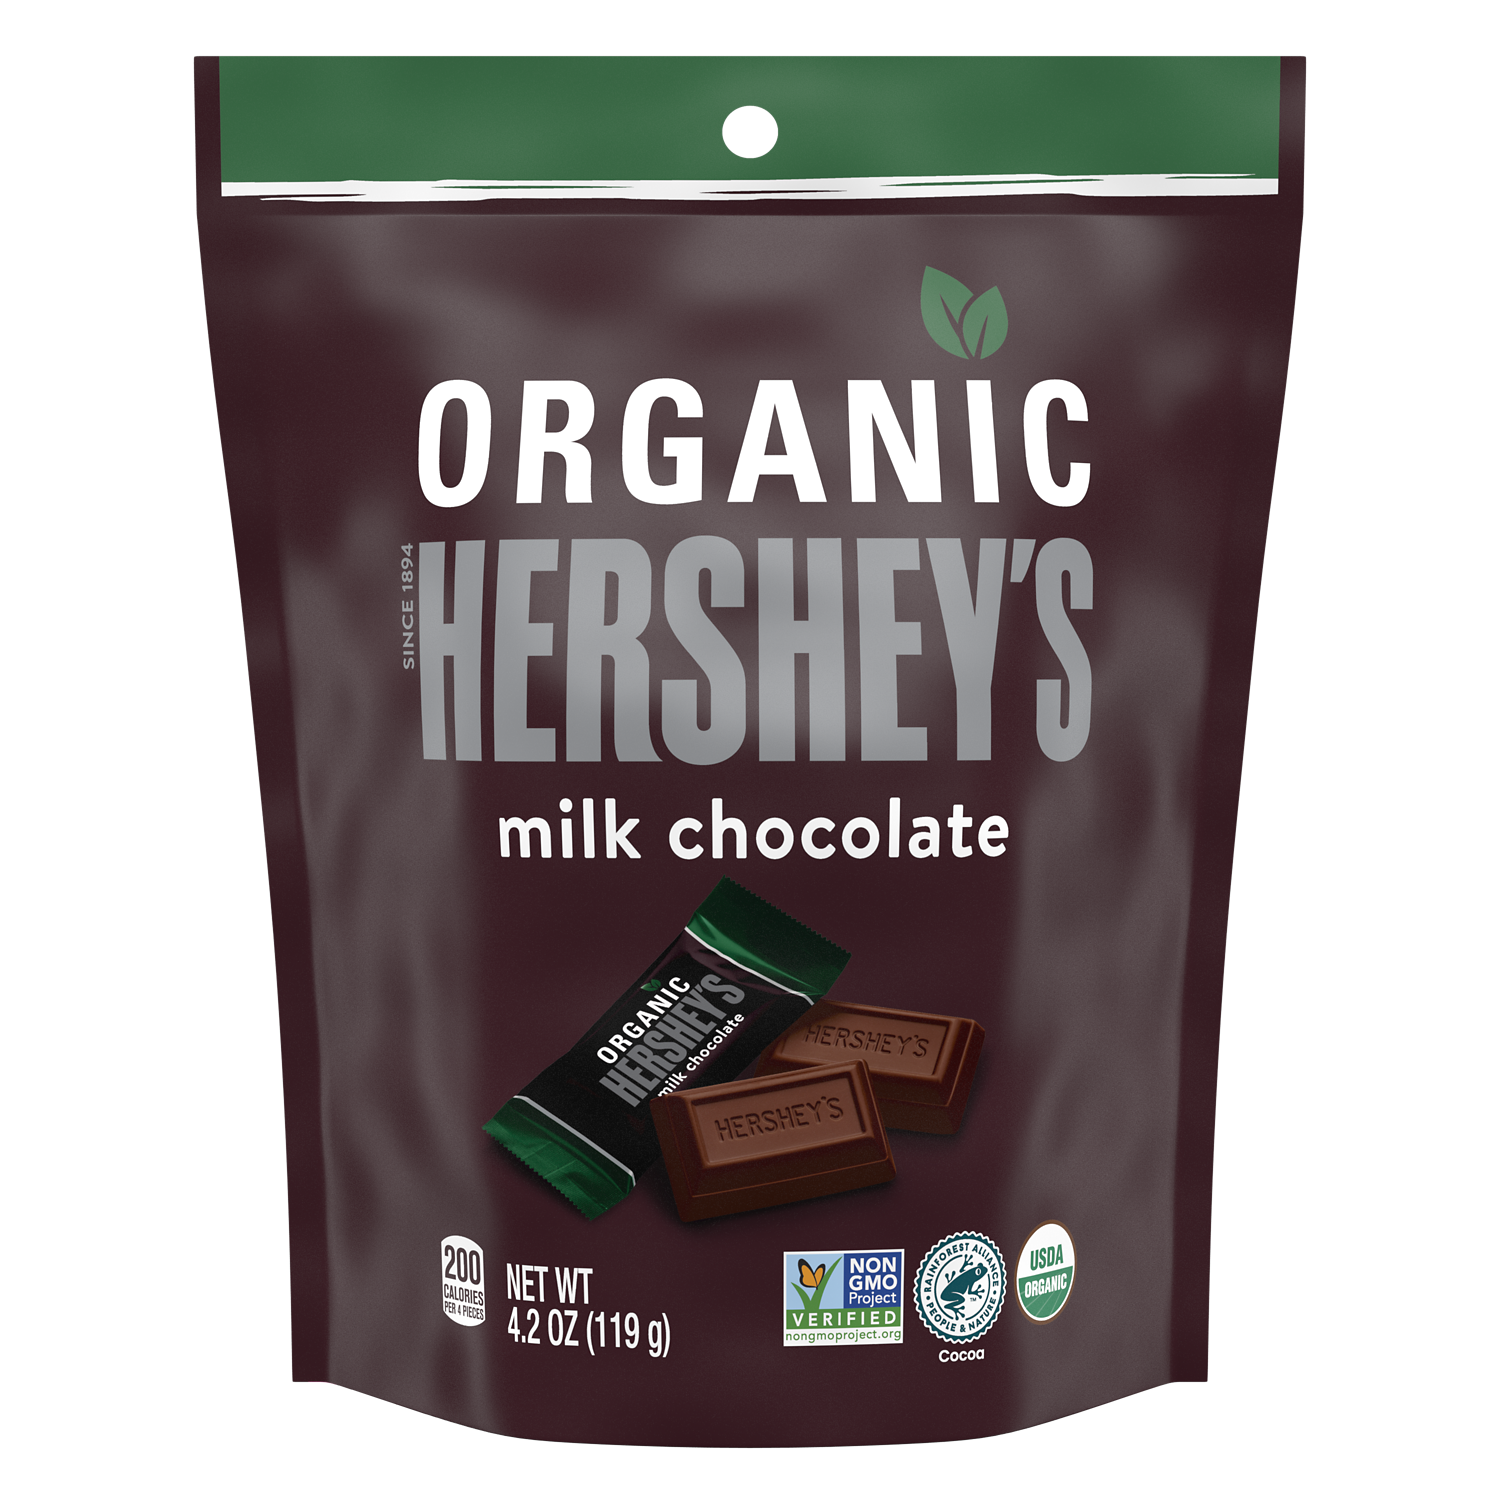 HERSHEY'S Organic Miniatures Milk Chocolate Candy Bars, 4.2 oz bag - Front of Package